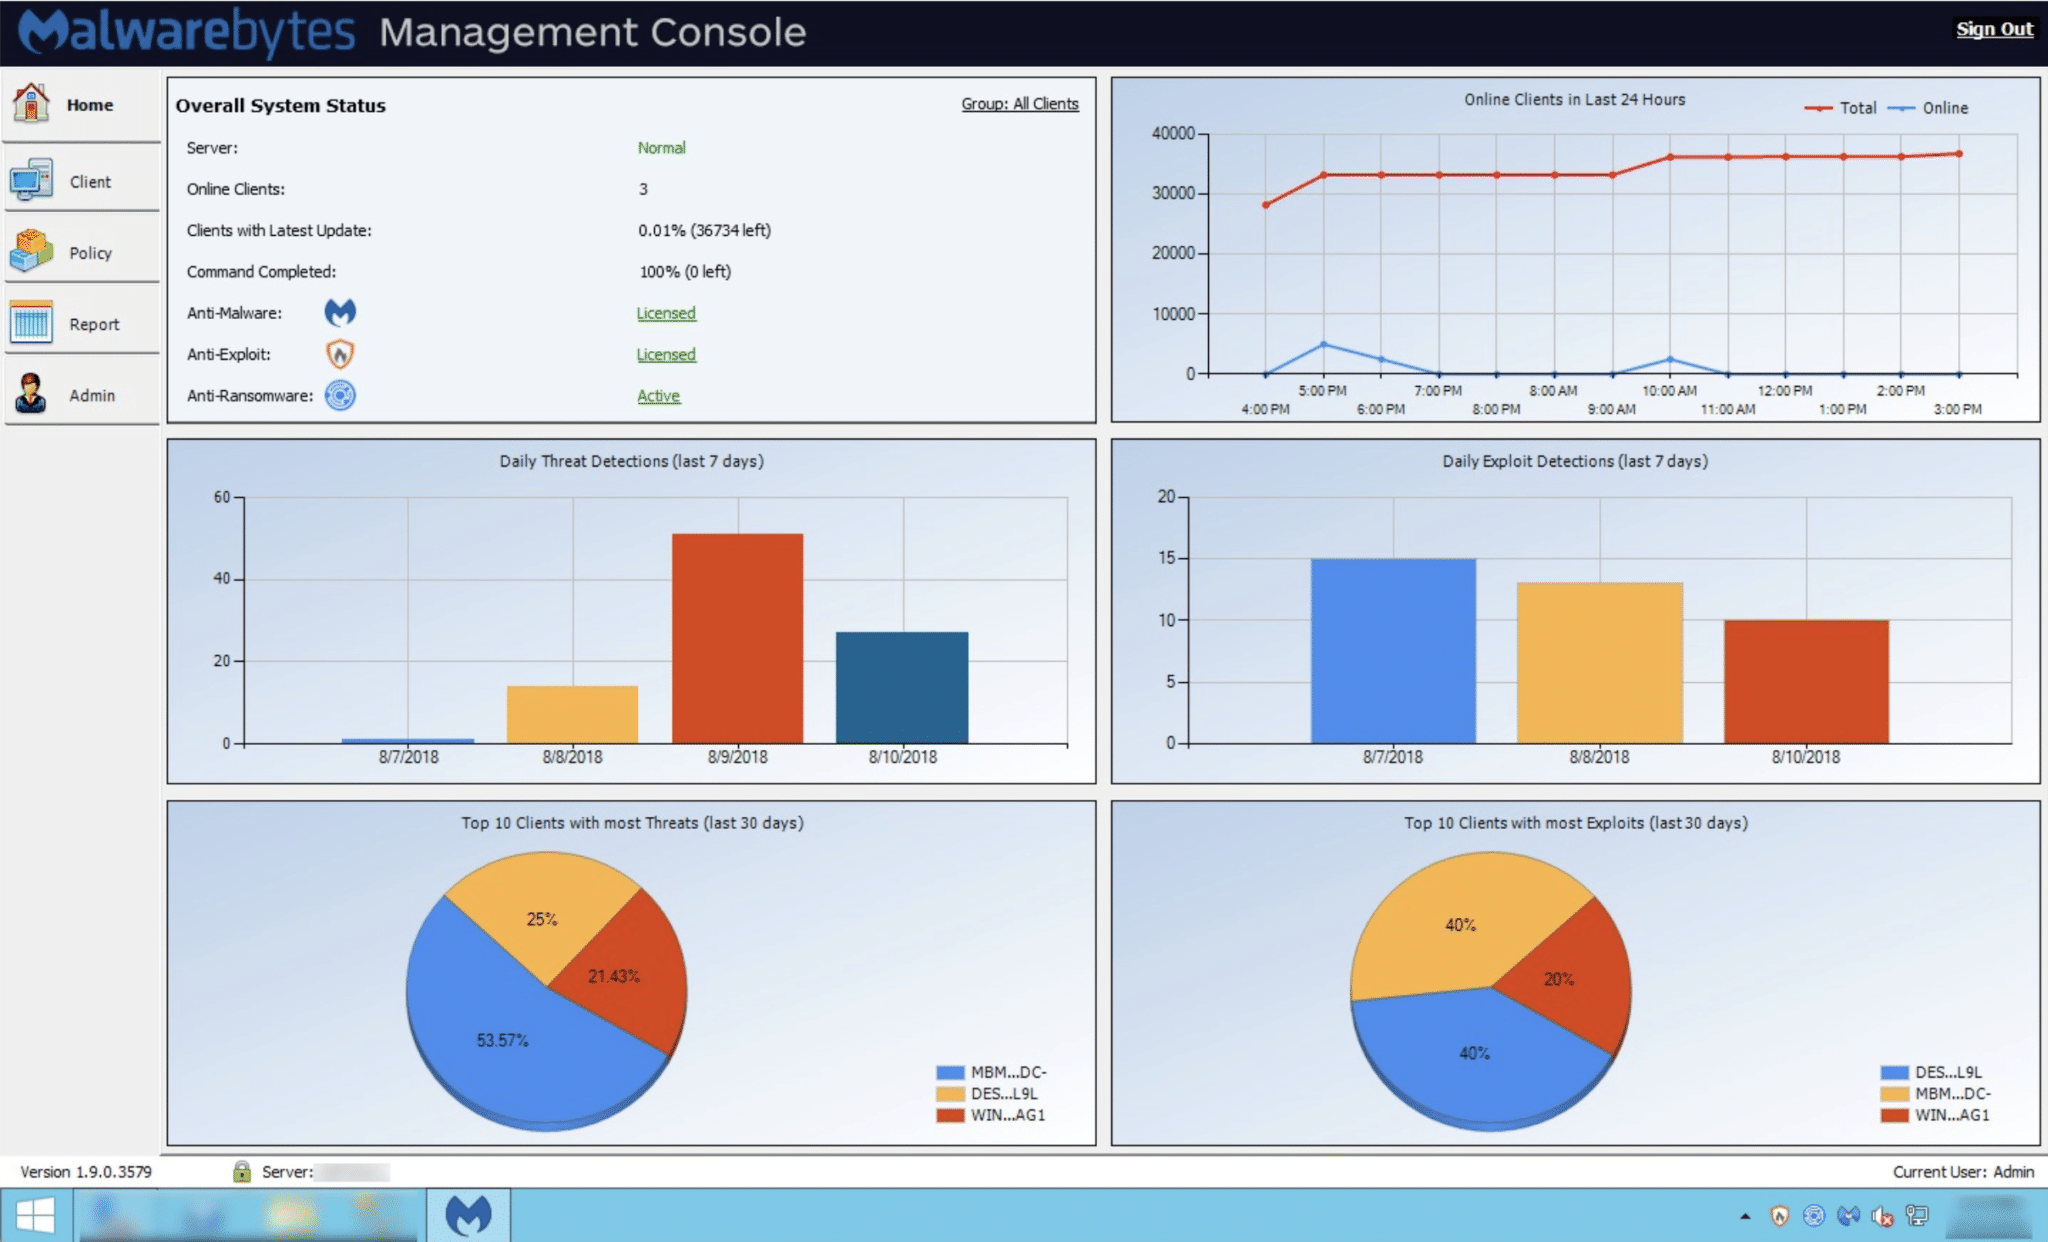 The on-premises management dashboard shows a high-level summary of deployed endpoints' status. Provided by Malwarebytes.